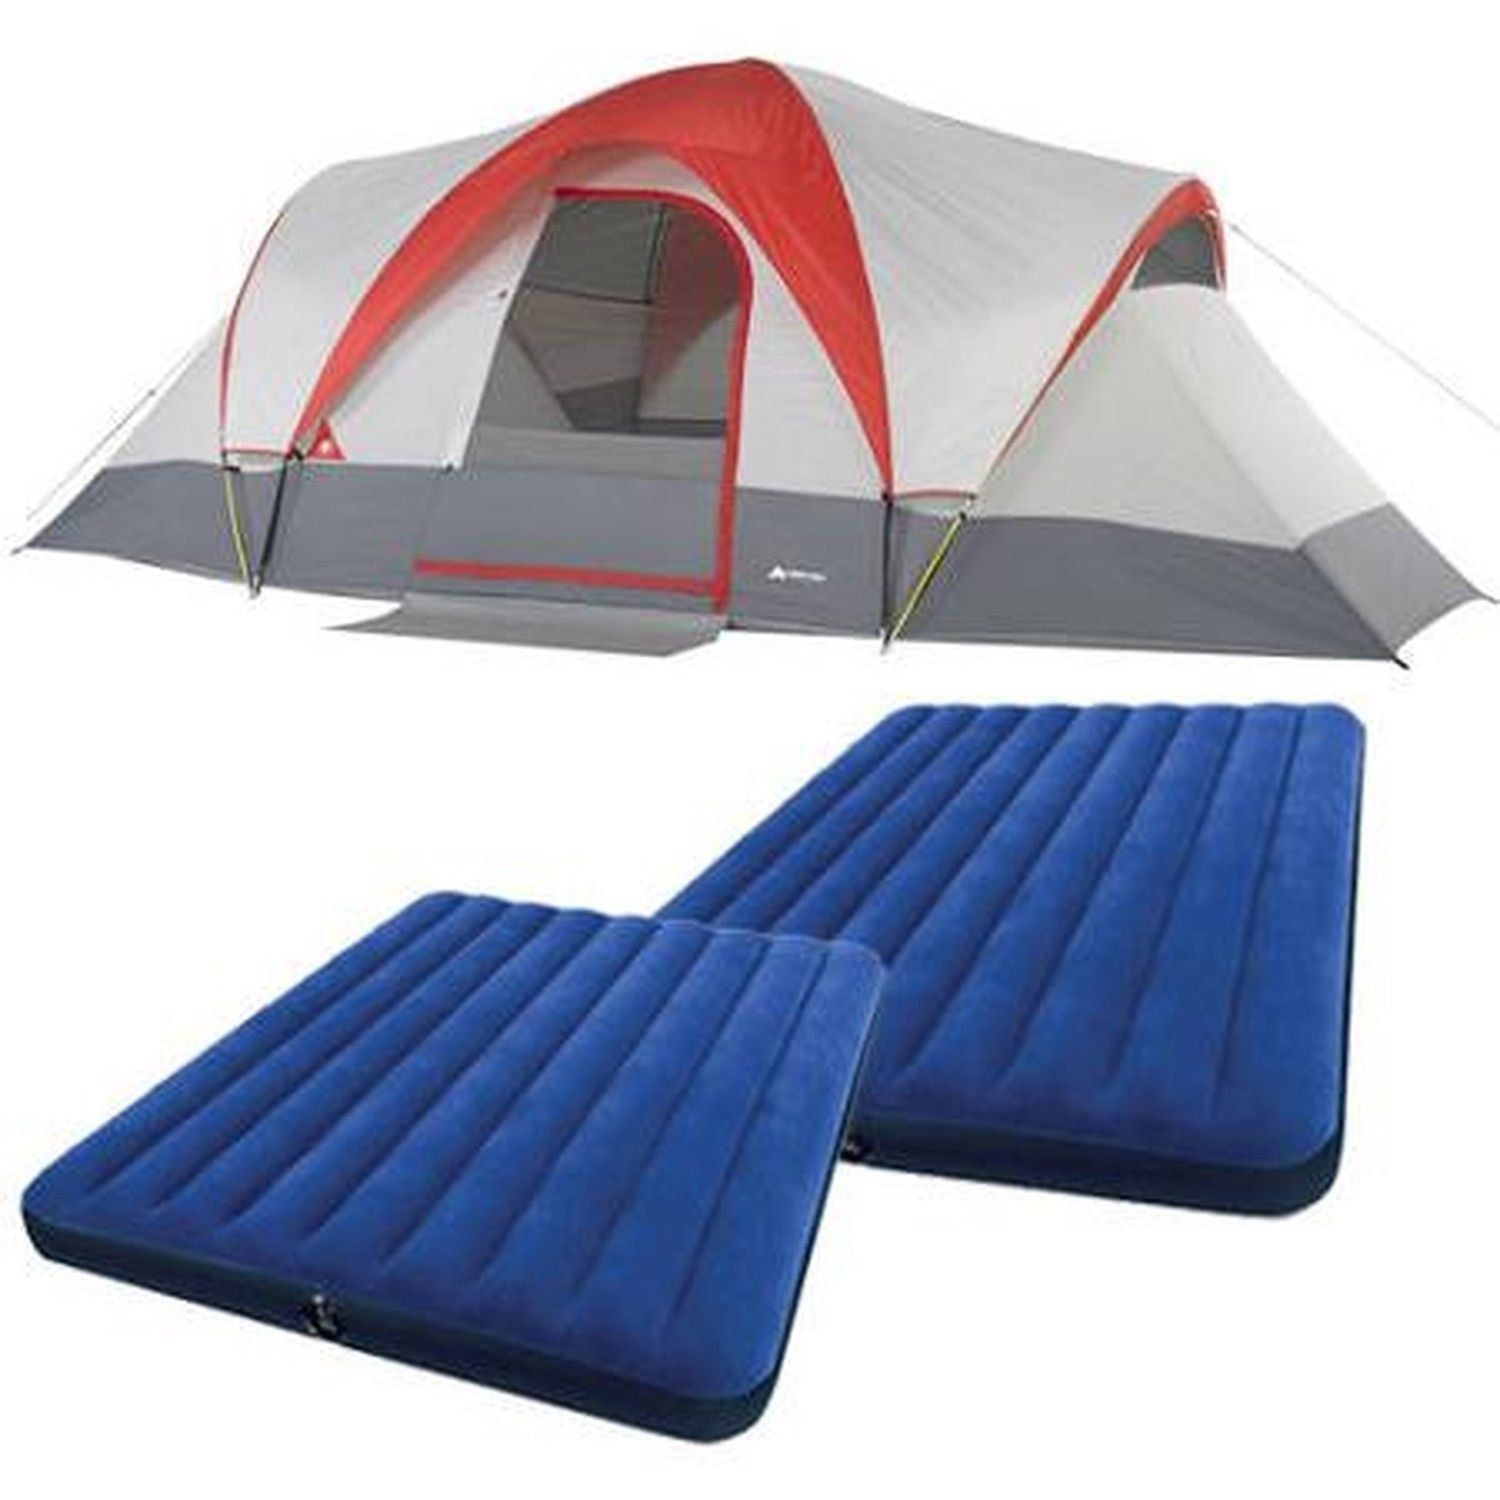 Ozark Trail Weatherbuster Person Dome Tent with Two Queen Airbeds